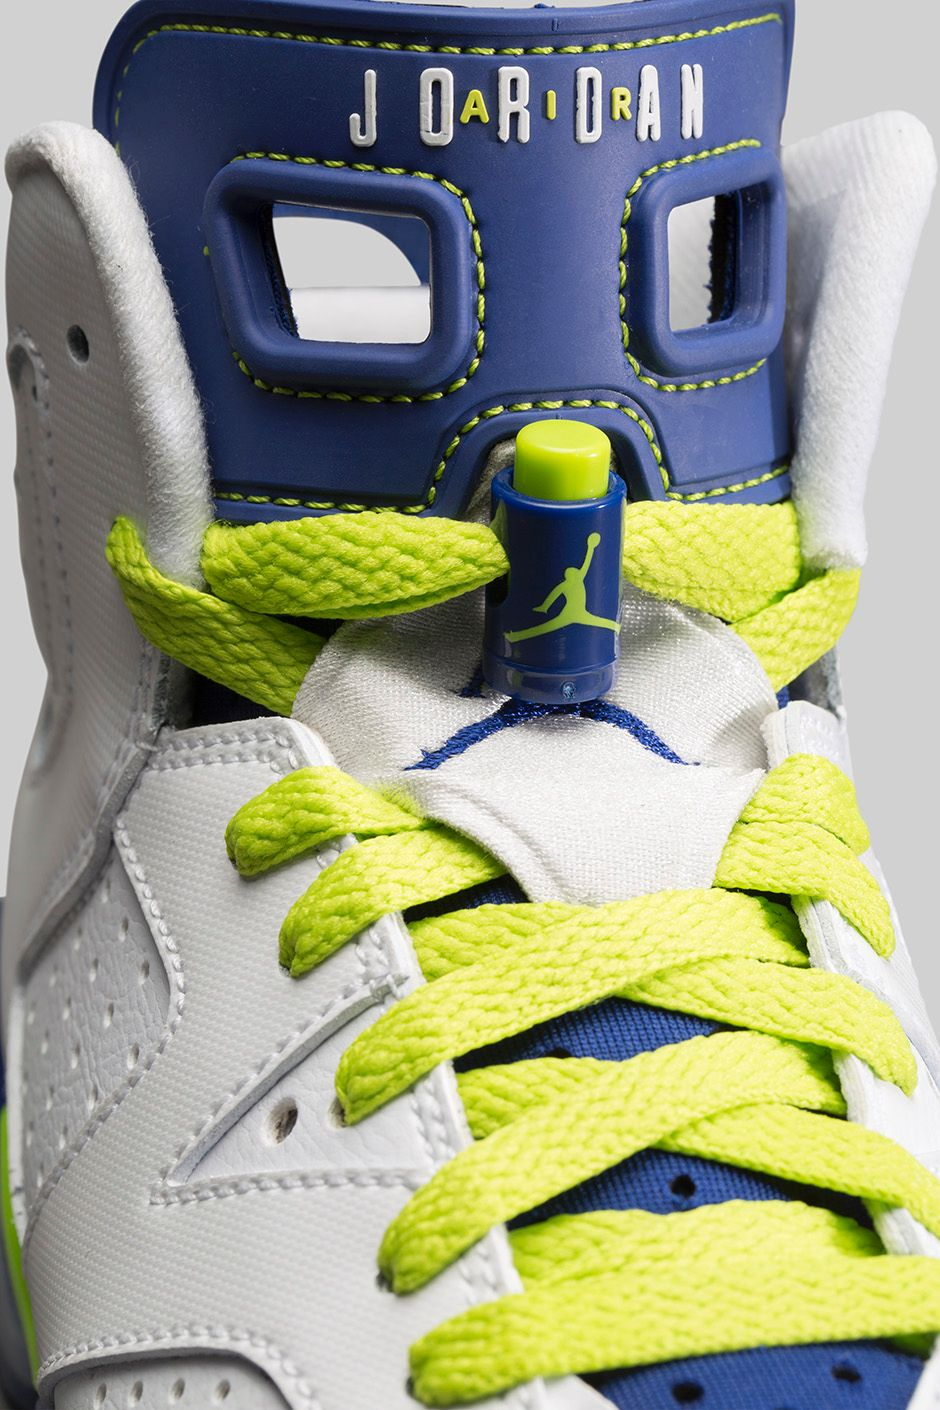 995f07f5c9b2 Air Jordan 6 Retro  Seahawks  GS - Available Now - WearTesters